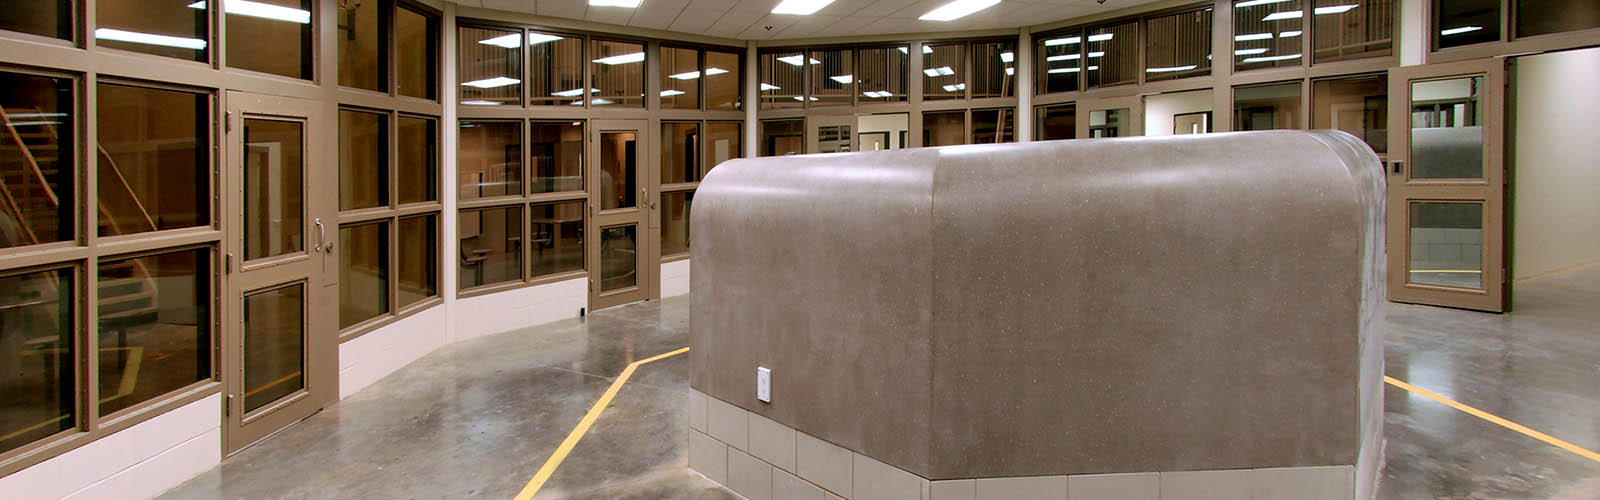 Taney County Justice Center 4